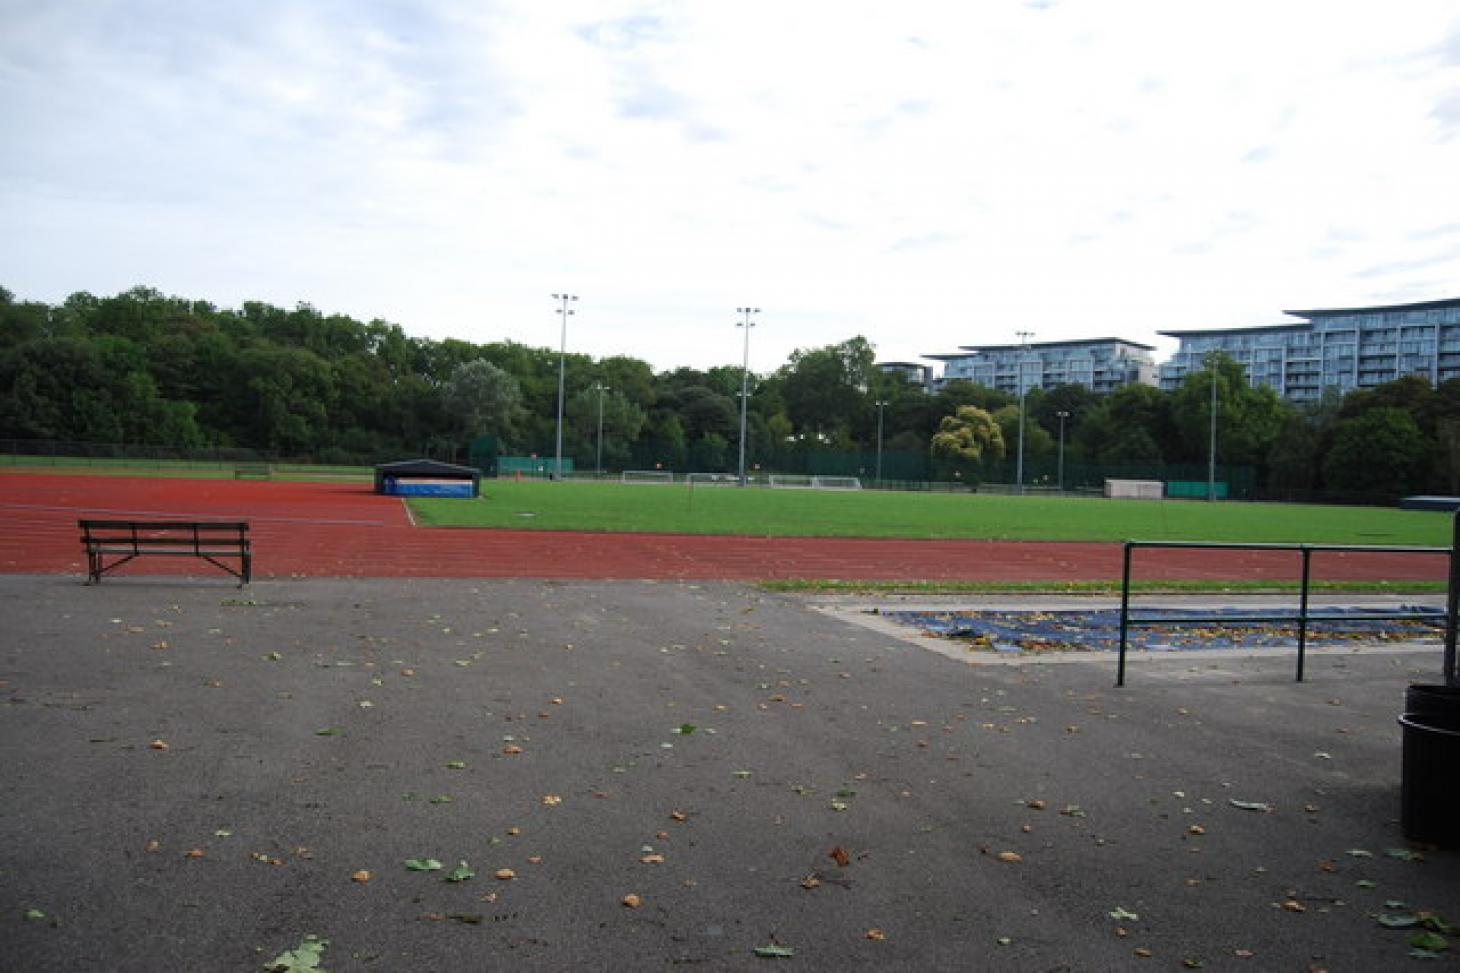 Battersea Park Millennium Arena Union rugby pitch